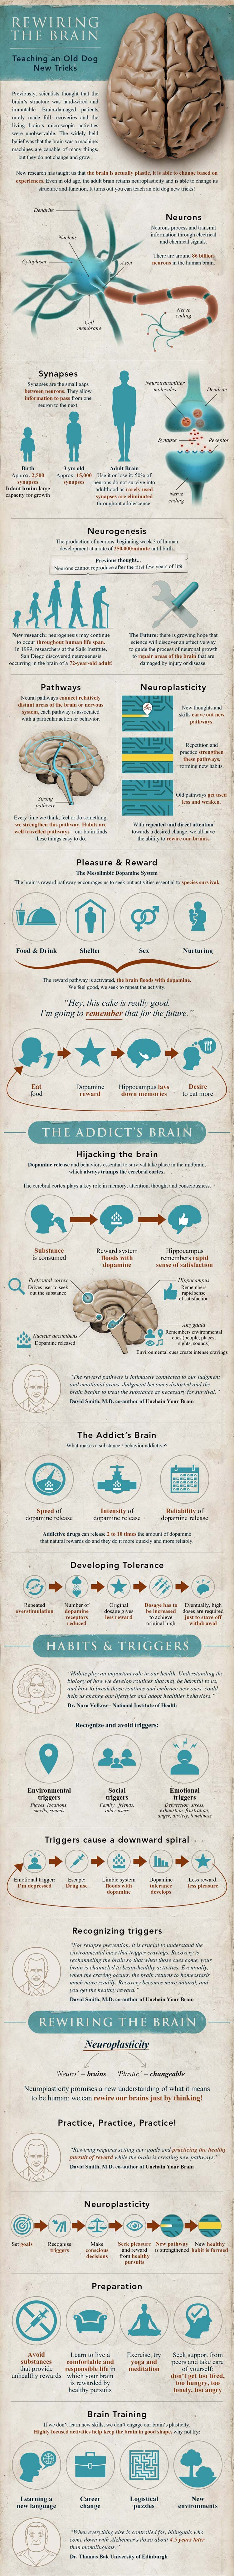 Learning and neuroplasticity infographic